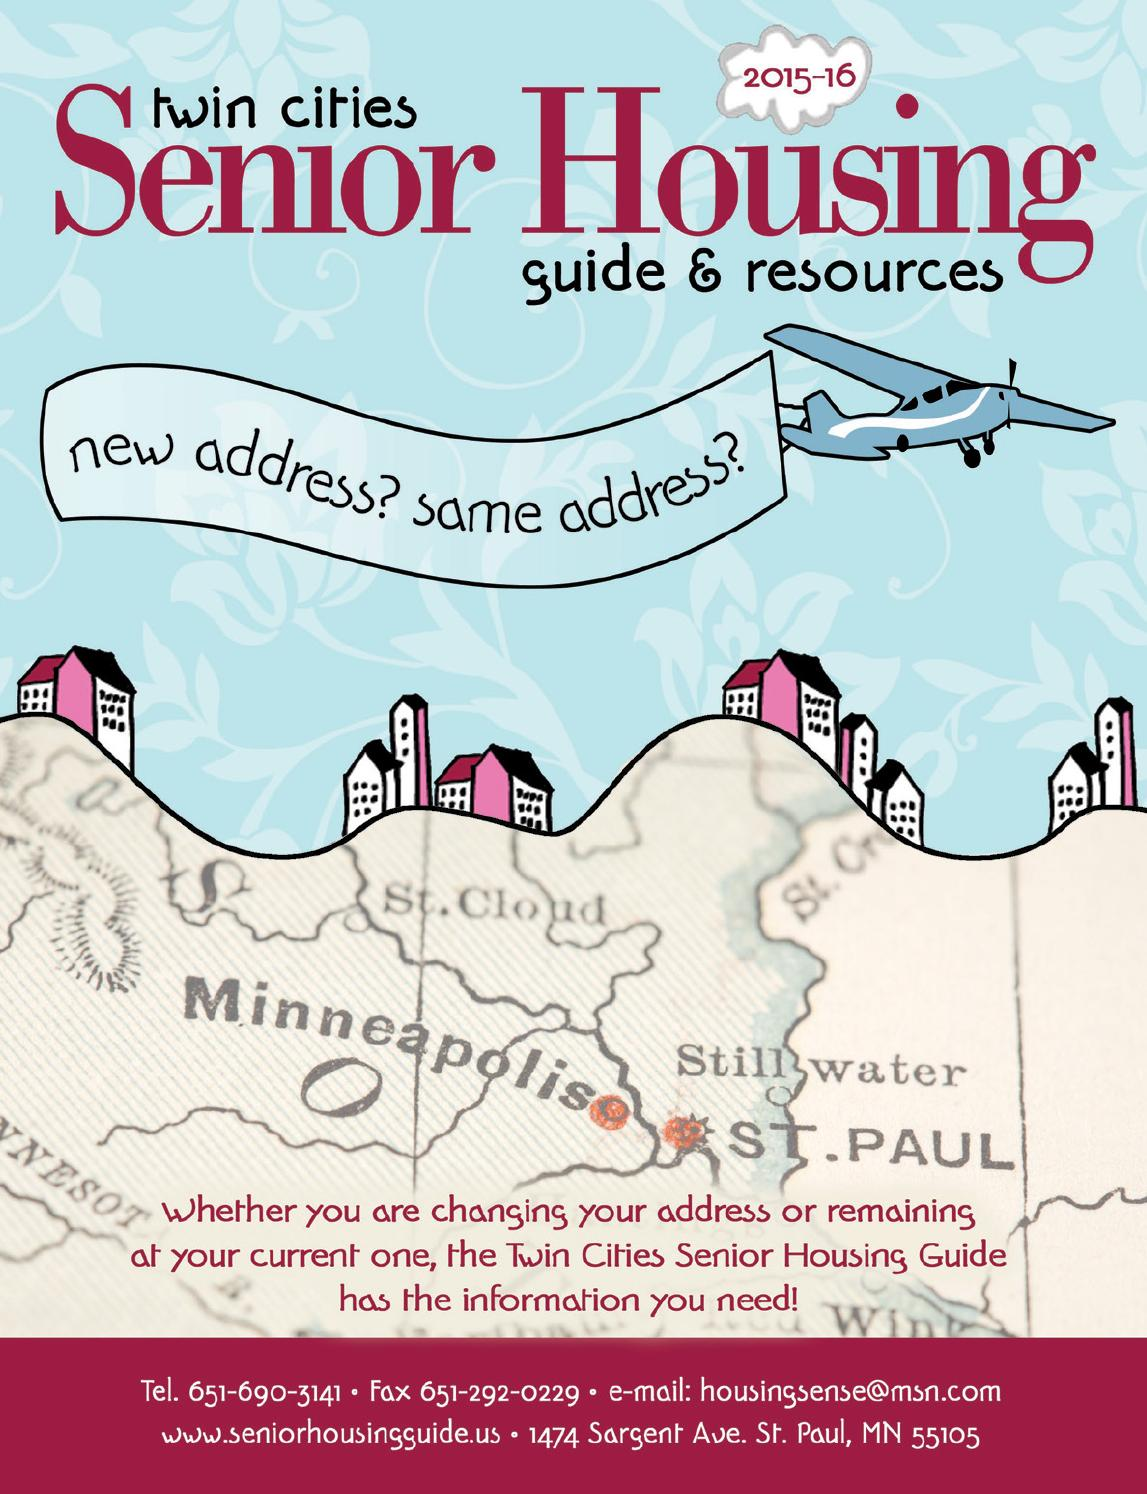 2015 senior housing guide & resources by senior housing guide - issuu